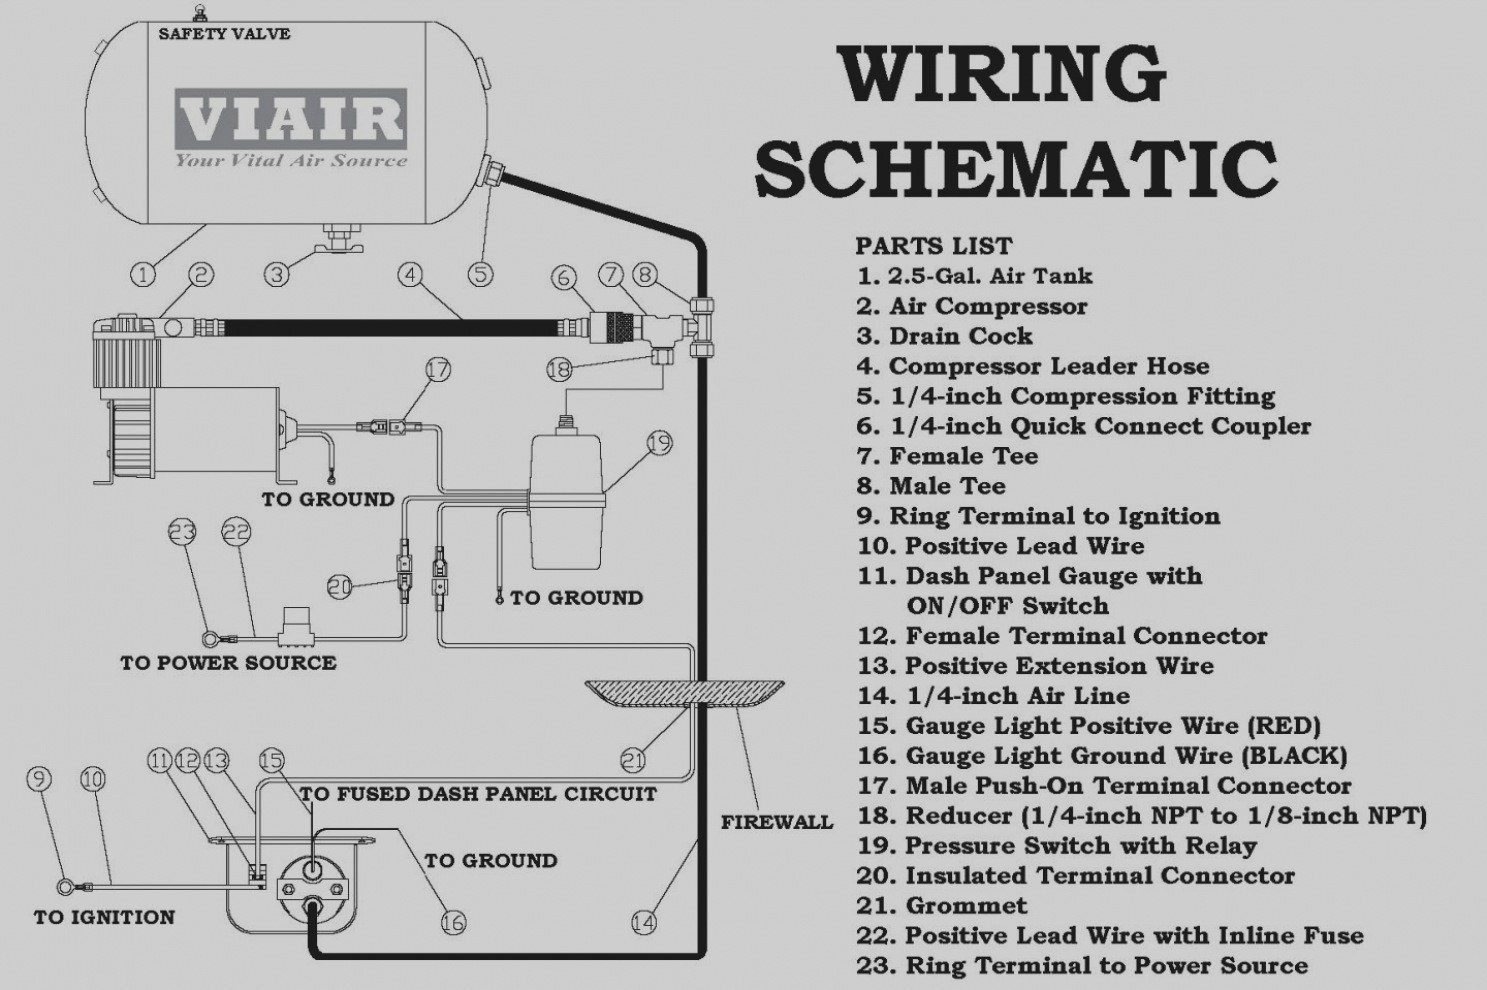 Train Air Horns Wiring Diagrams | Wiring Diagram - Air Horns Wiring Diagram